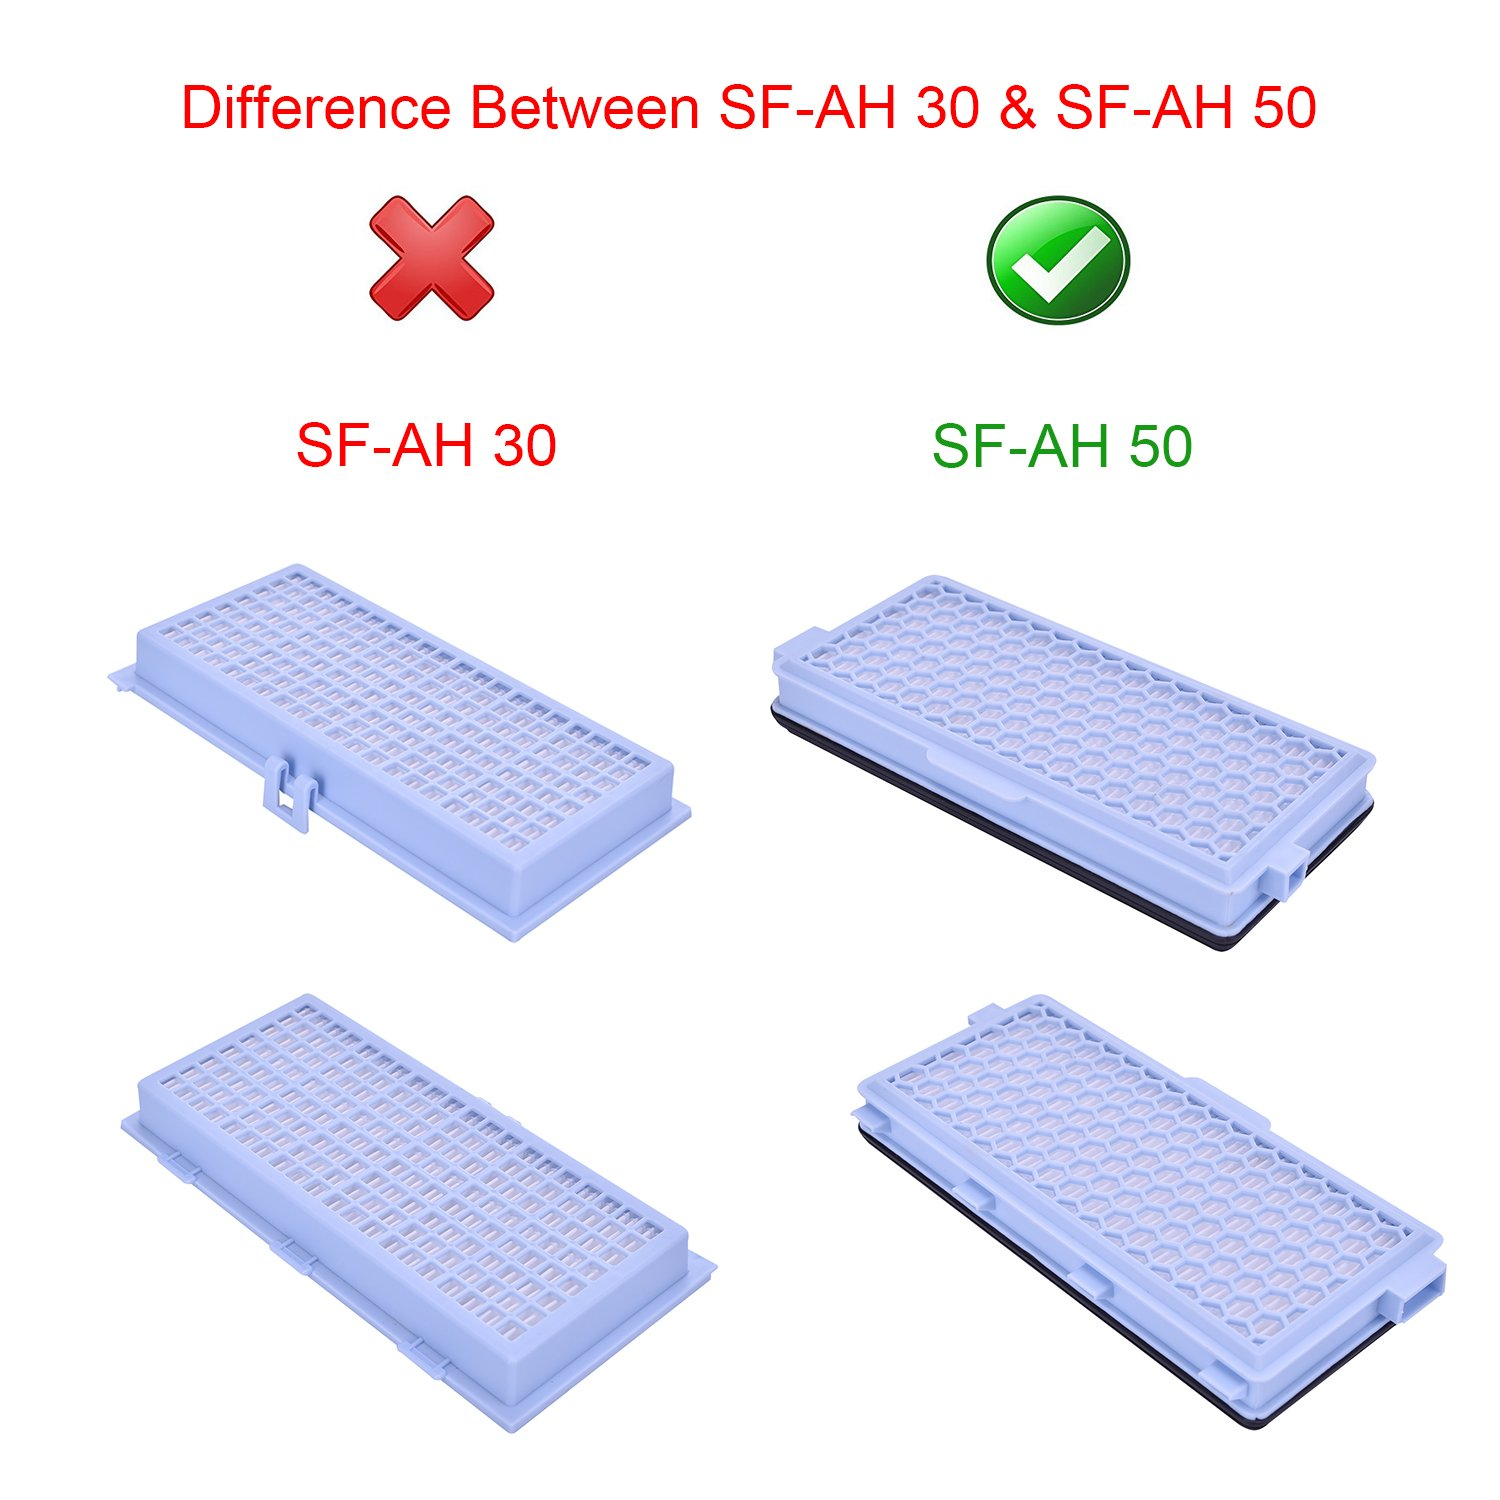 Smartide Miele Sf-ha 50 Replacement Active Hepa Filter for S4 S5 S6 S8 & S4000 S5000 S6000 S8000 (Not fit AirClean 30 Filter) by Smartide